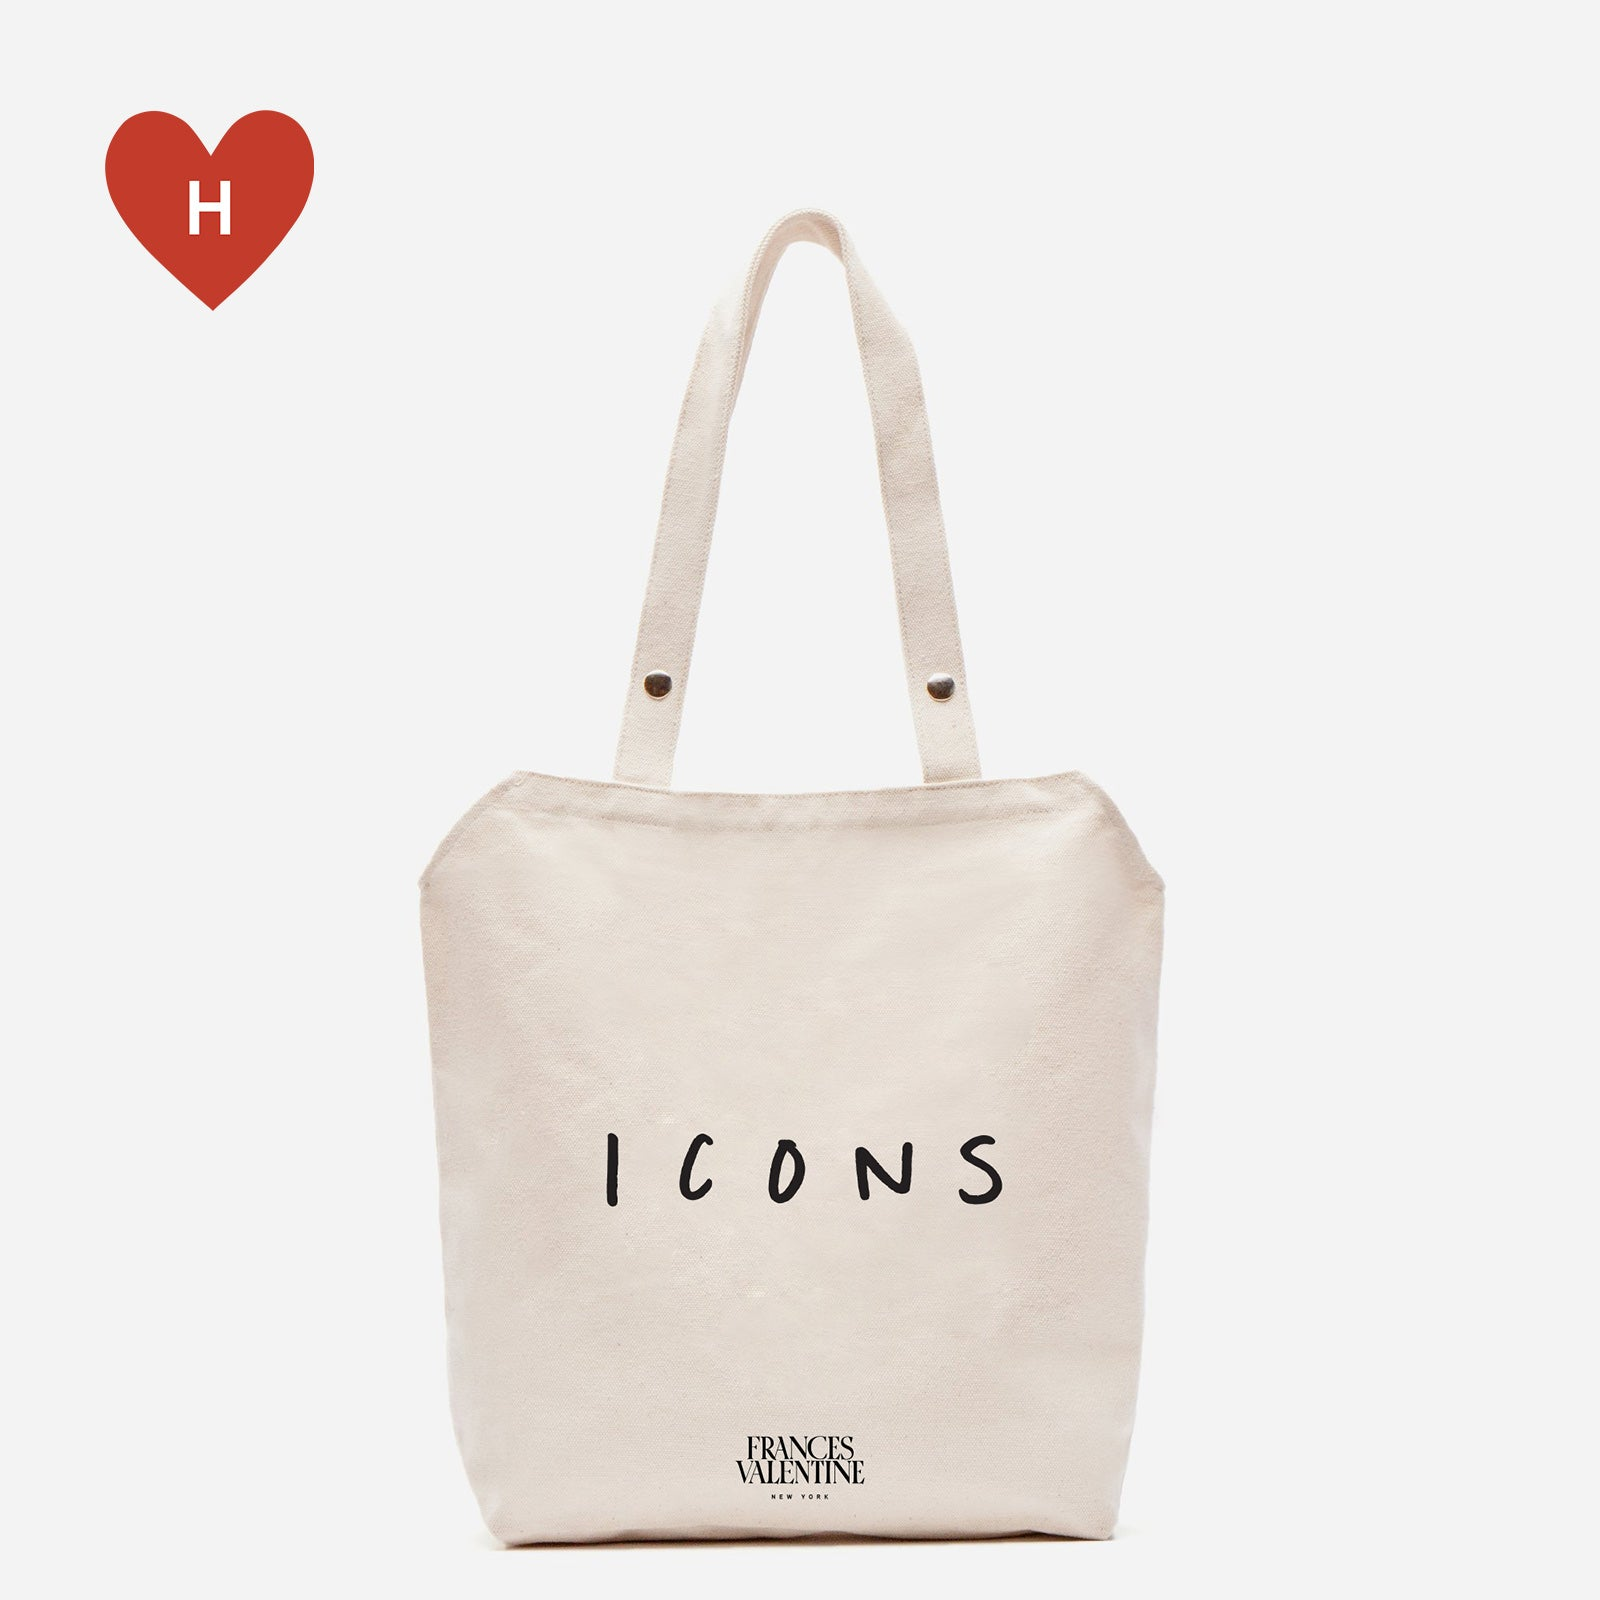 *DONATE TO A HEALTHCARE HERO* Icons Canvas Tote by Donald Robertson